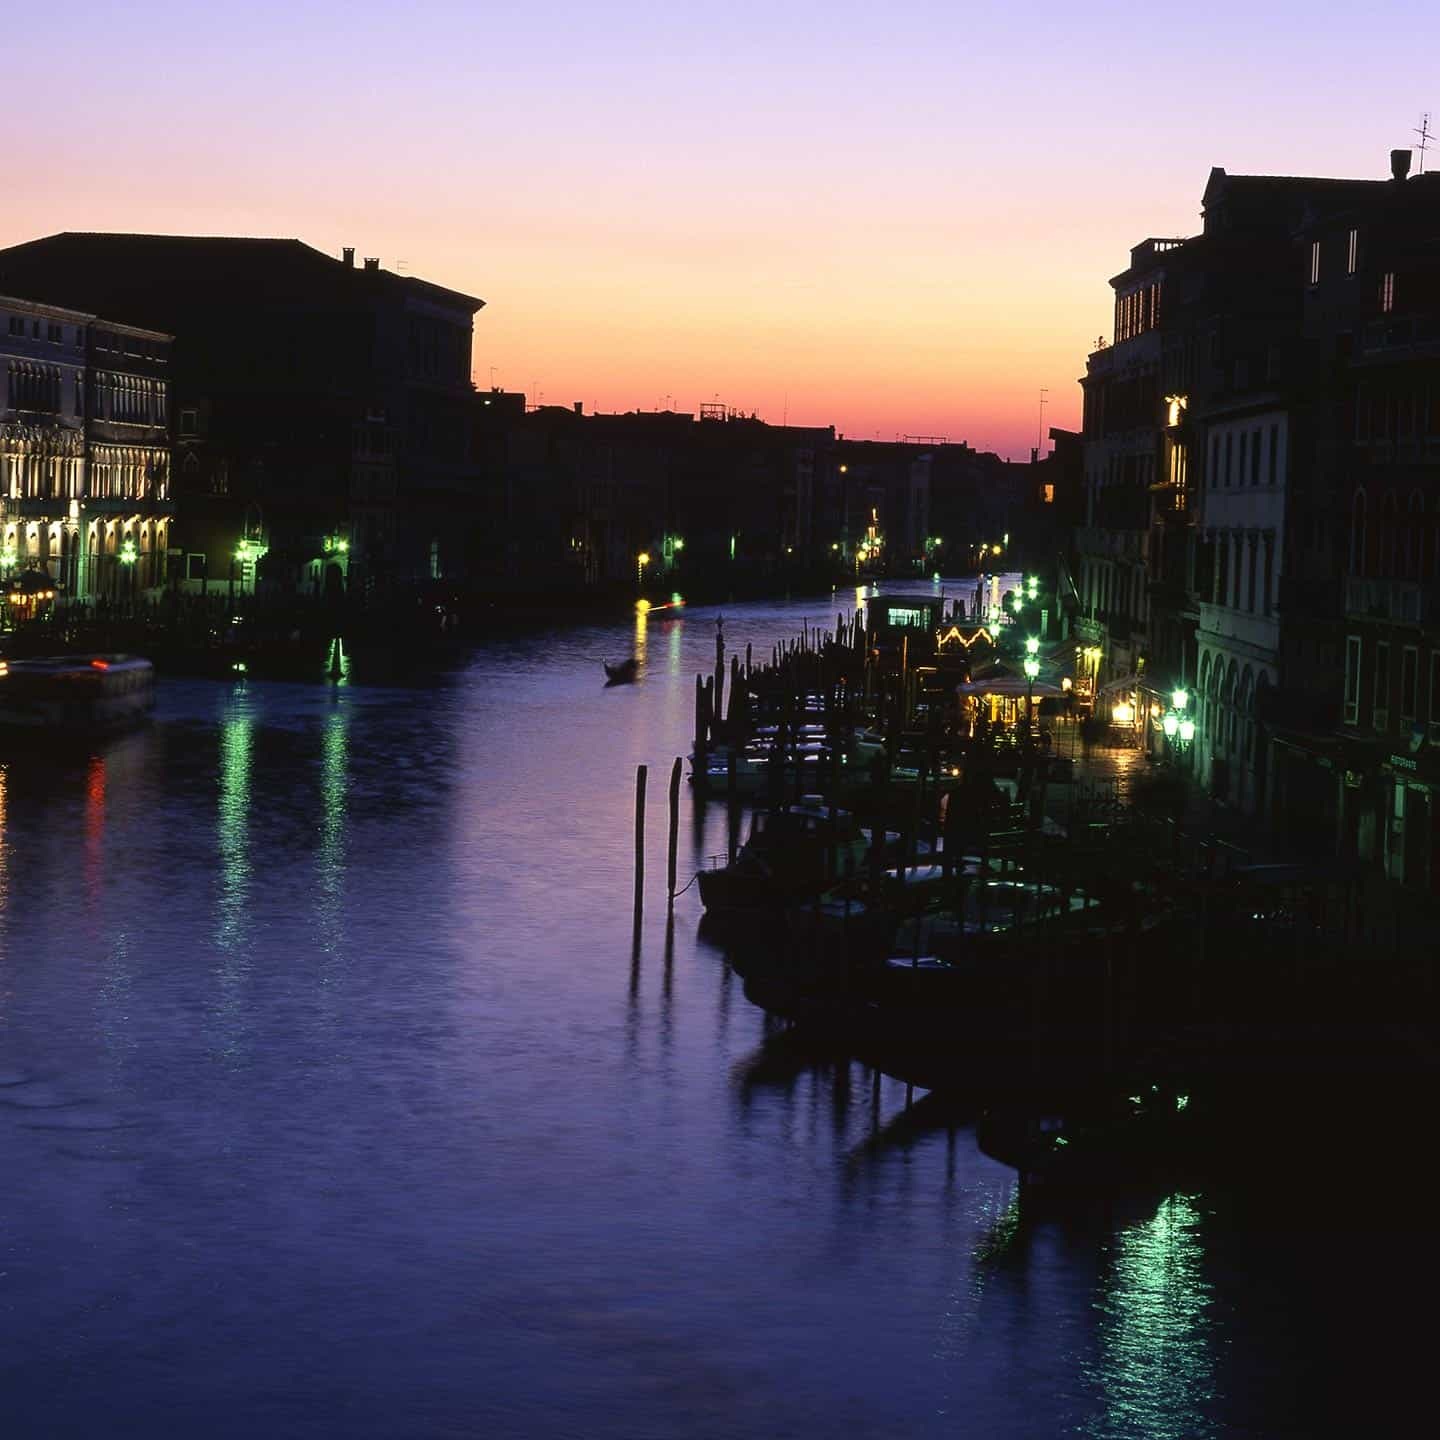 Image of the Grand canal Venice at twilight